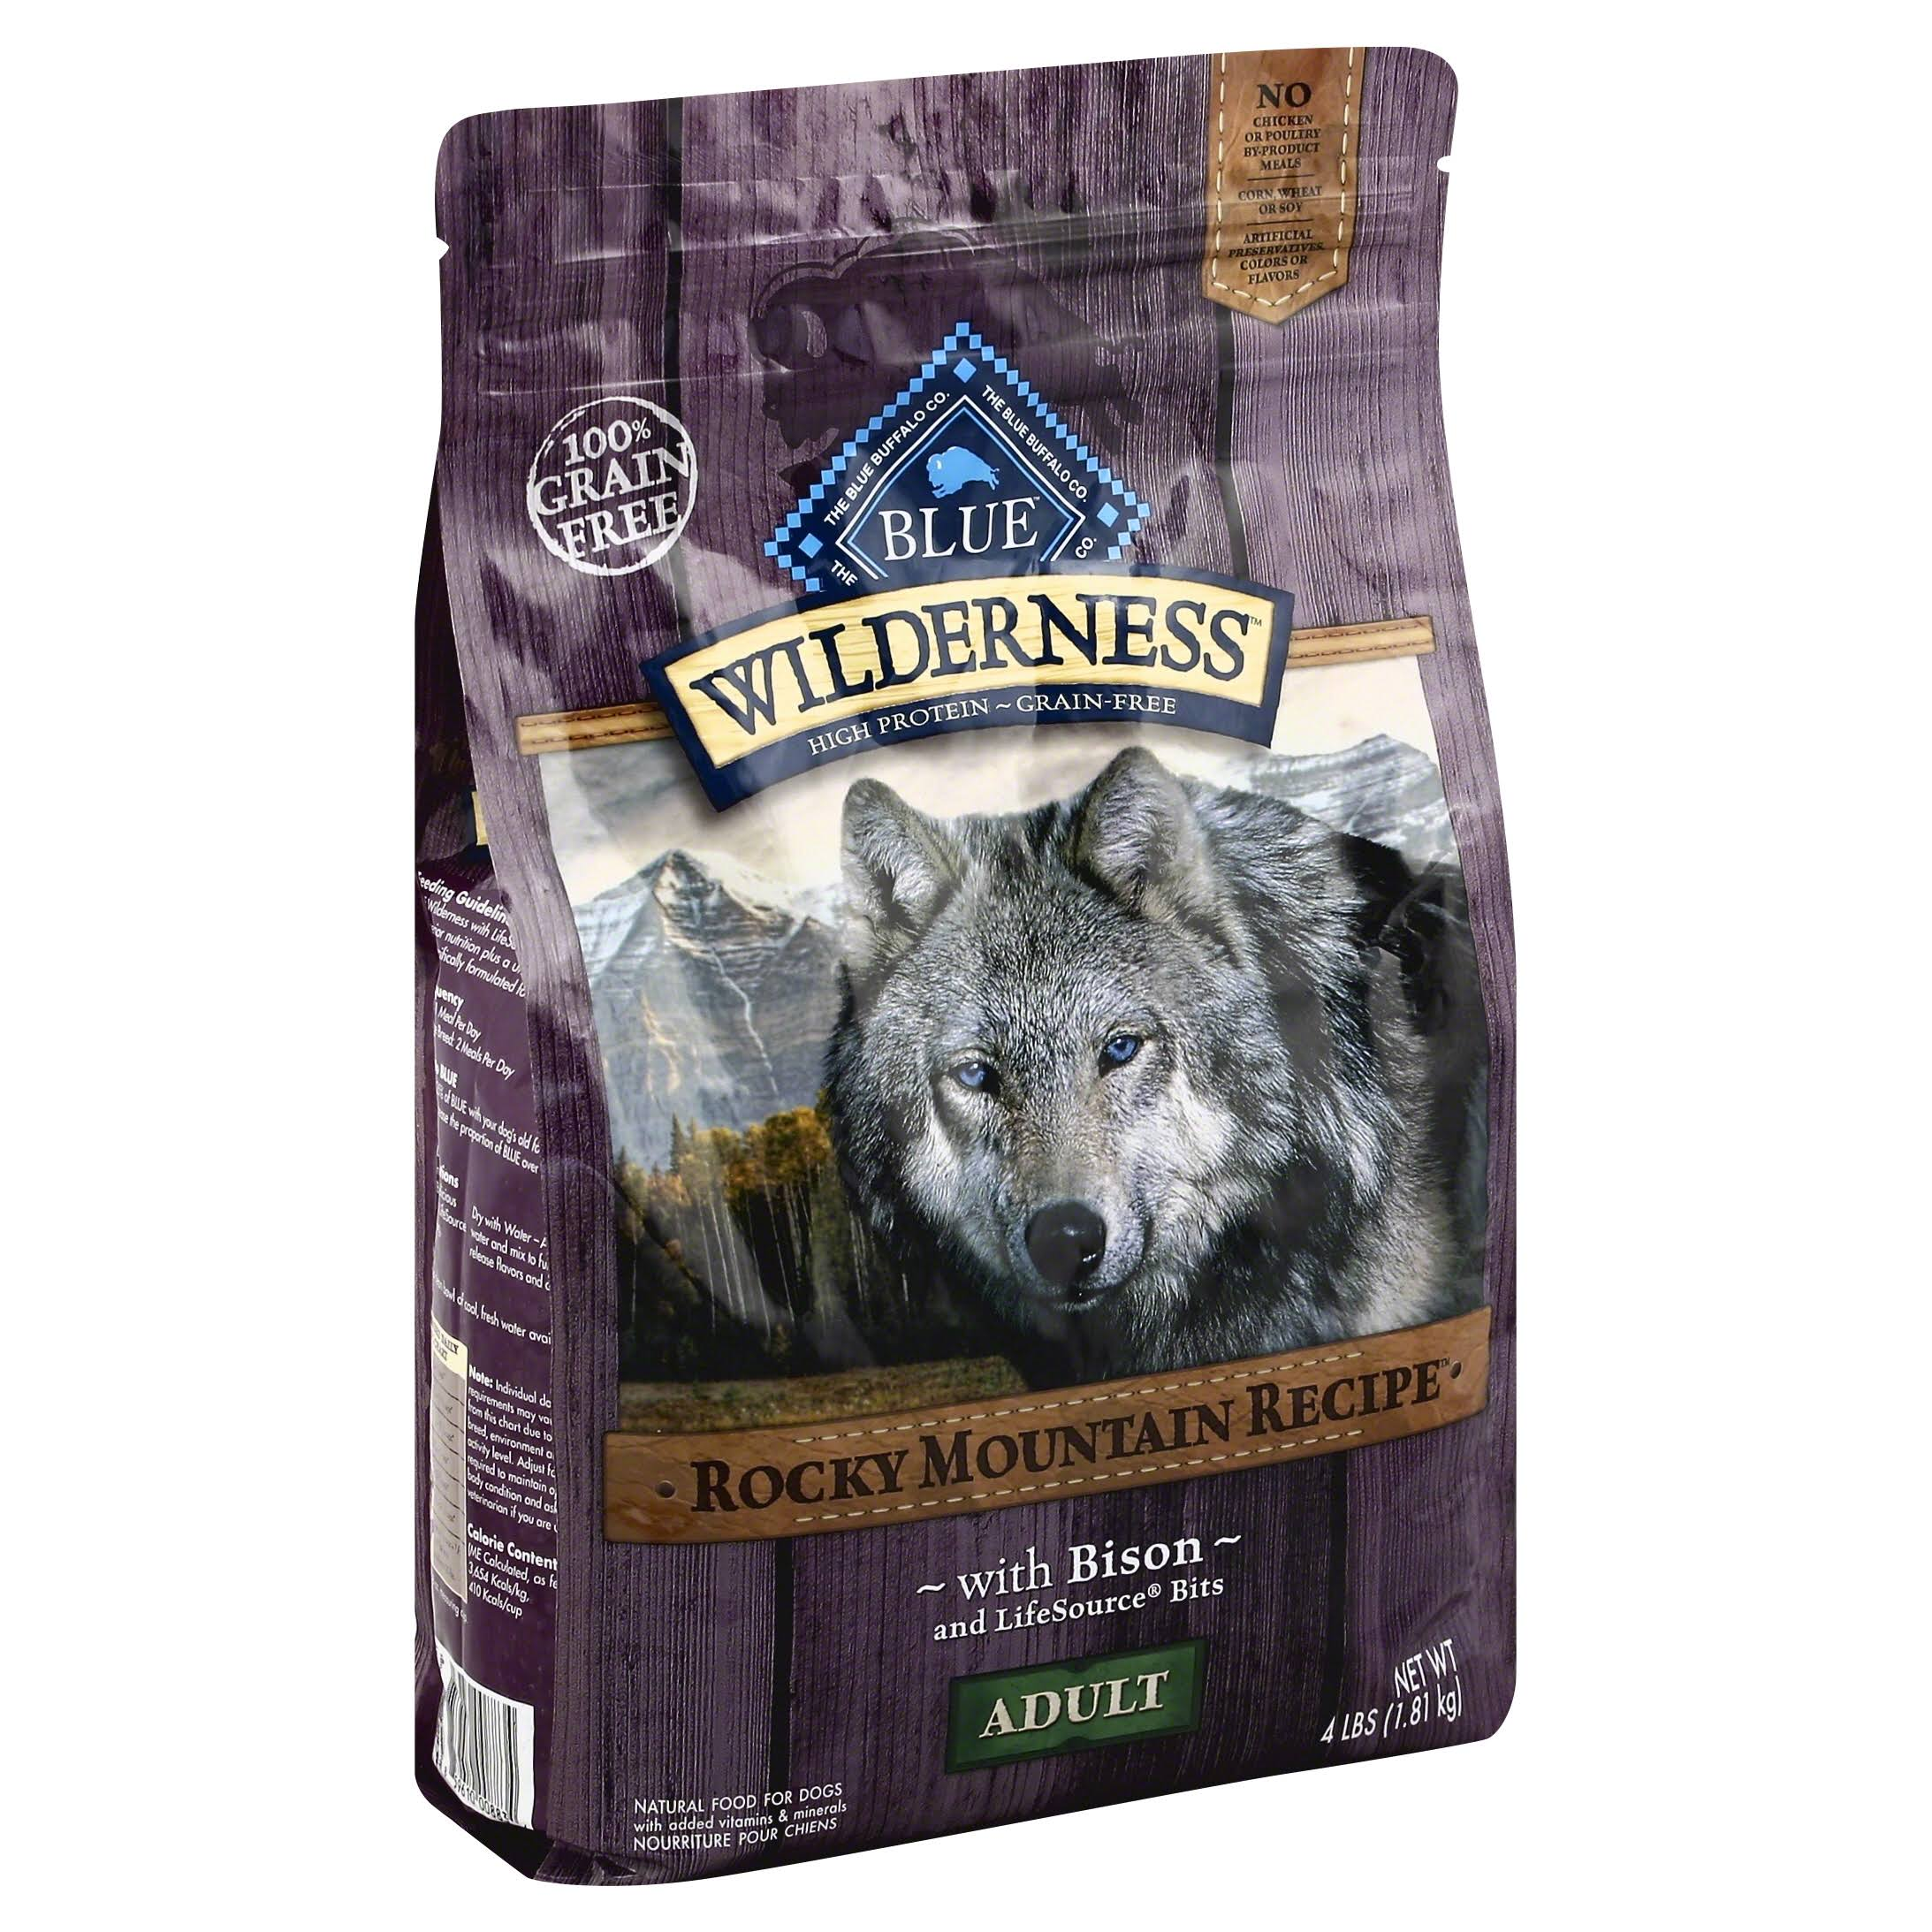 Blue Buffalo Wilderness Adult Dog Food - Rocky Mountain Recipes with Bison, 4lbs